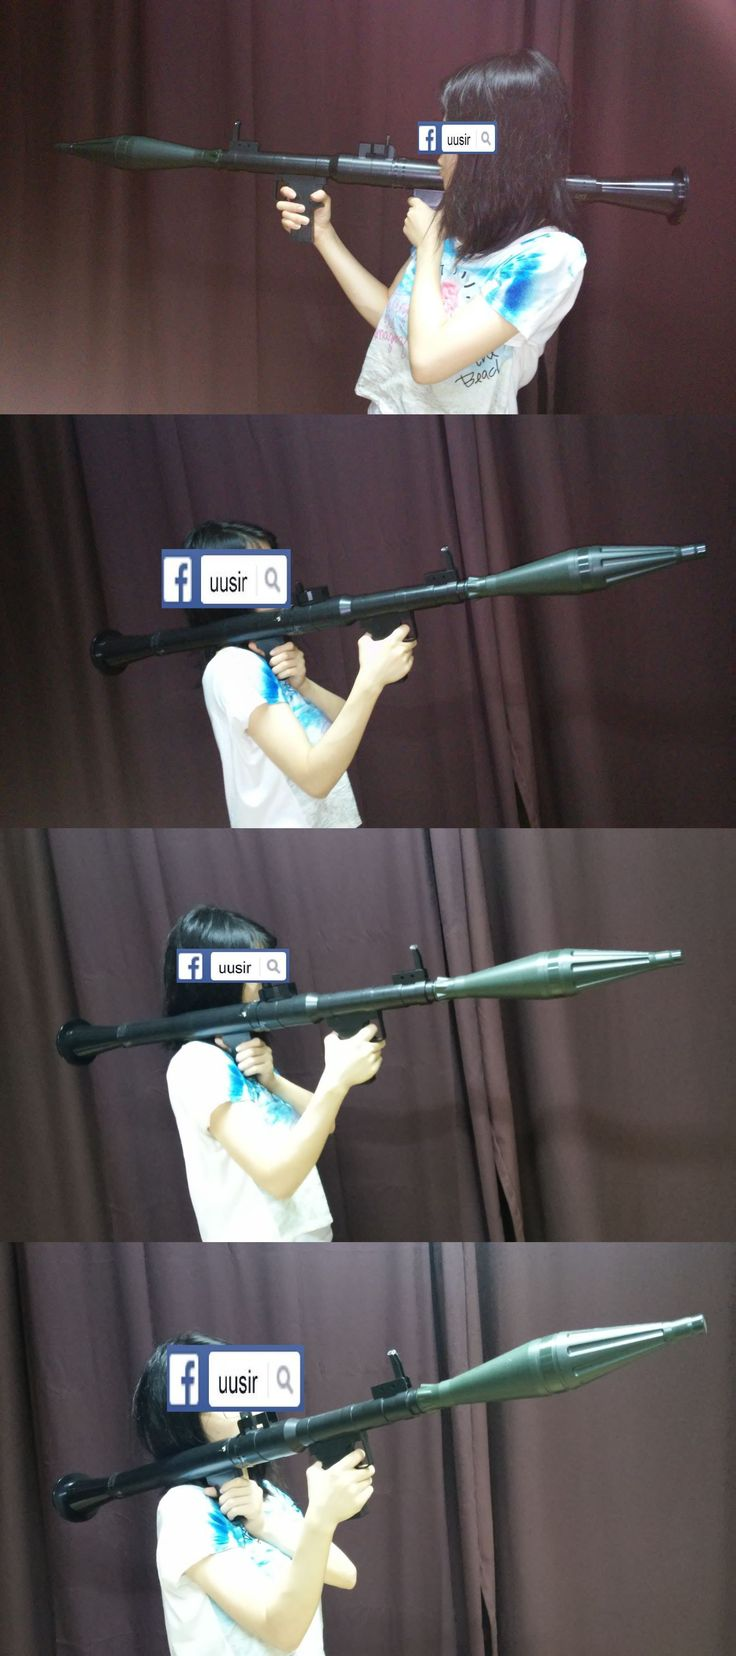 Other Airsoft 31688: Rpg-7 Dummy Model Toy Drama Movie Prop Cosplay Hans Rpg 7 Halloween Costume -> BUY IT NOW ONLY: $96 on eBay!